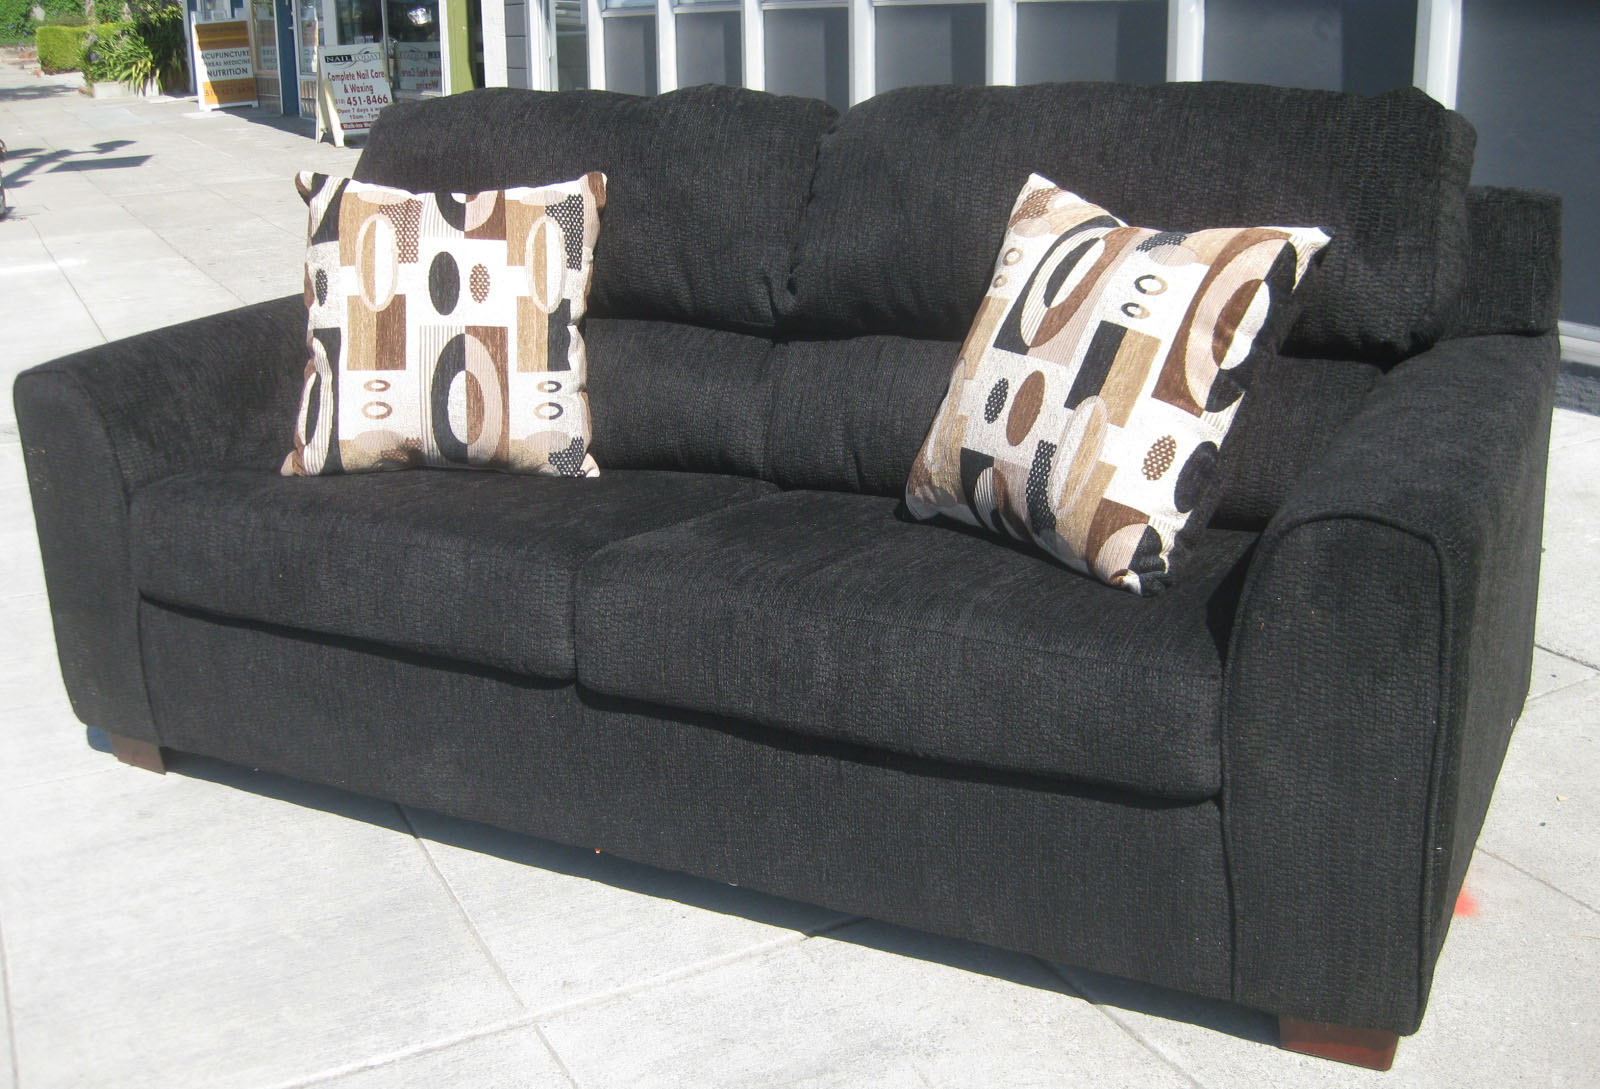 Uhuru Furniture Collectibles Sold Brand New Sofabed